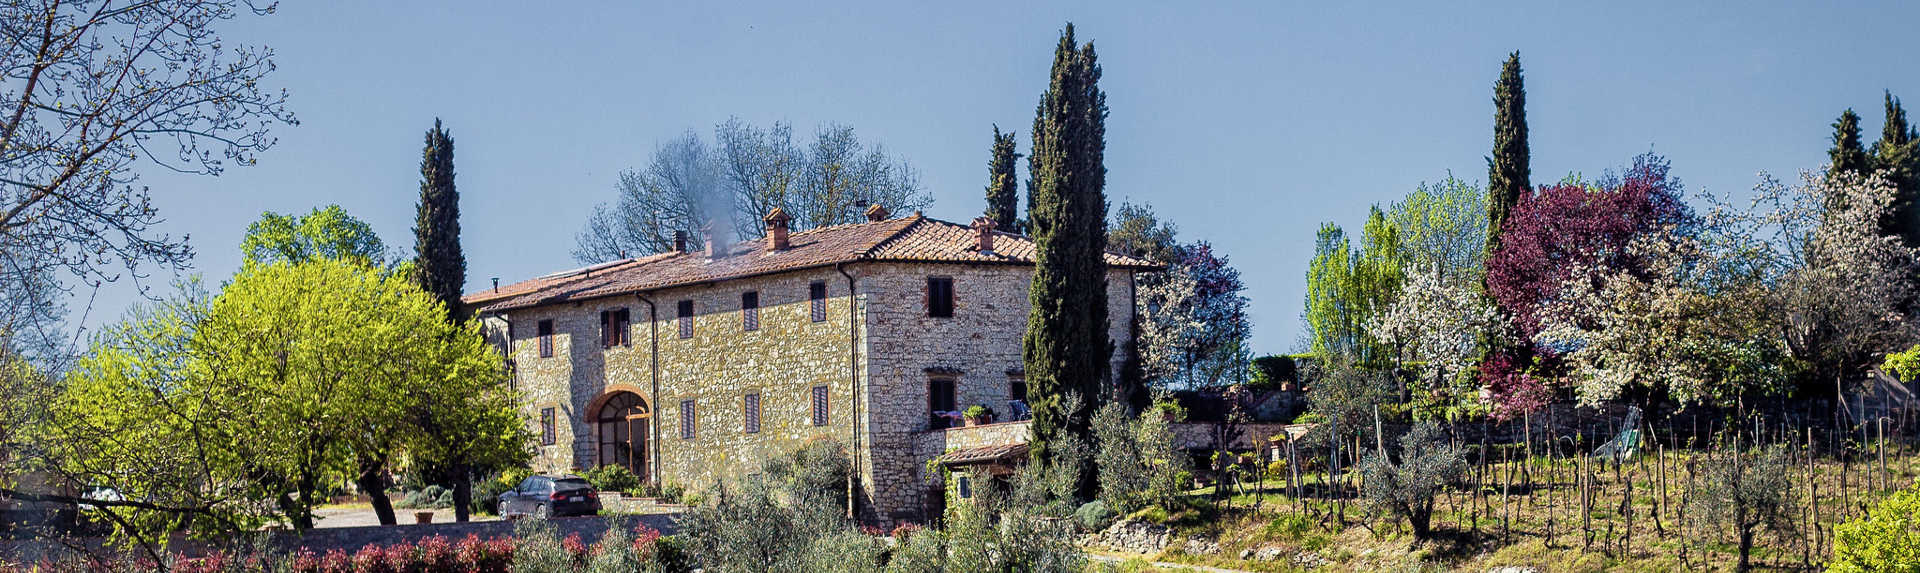 How do you visit Tuscany wineries?